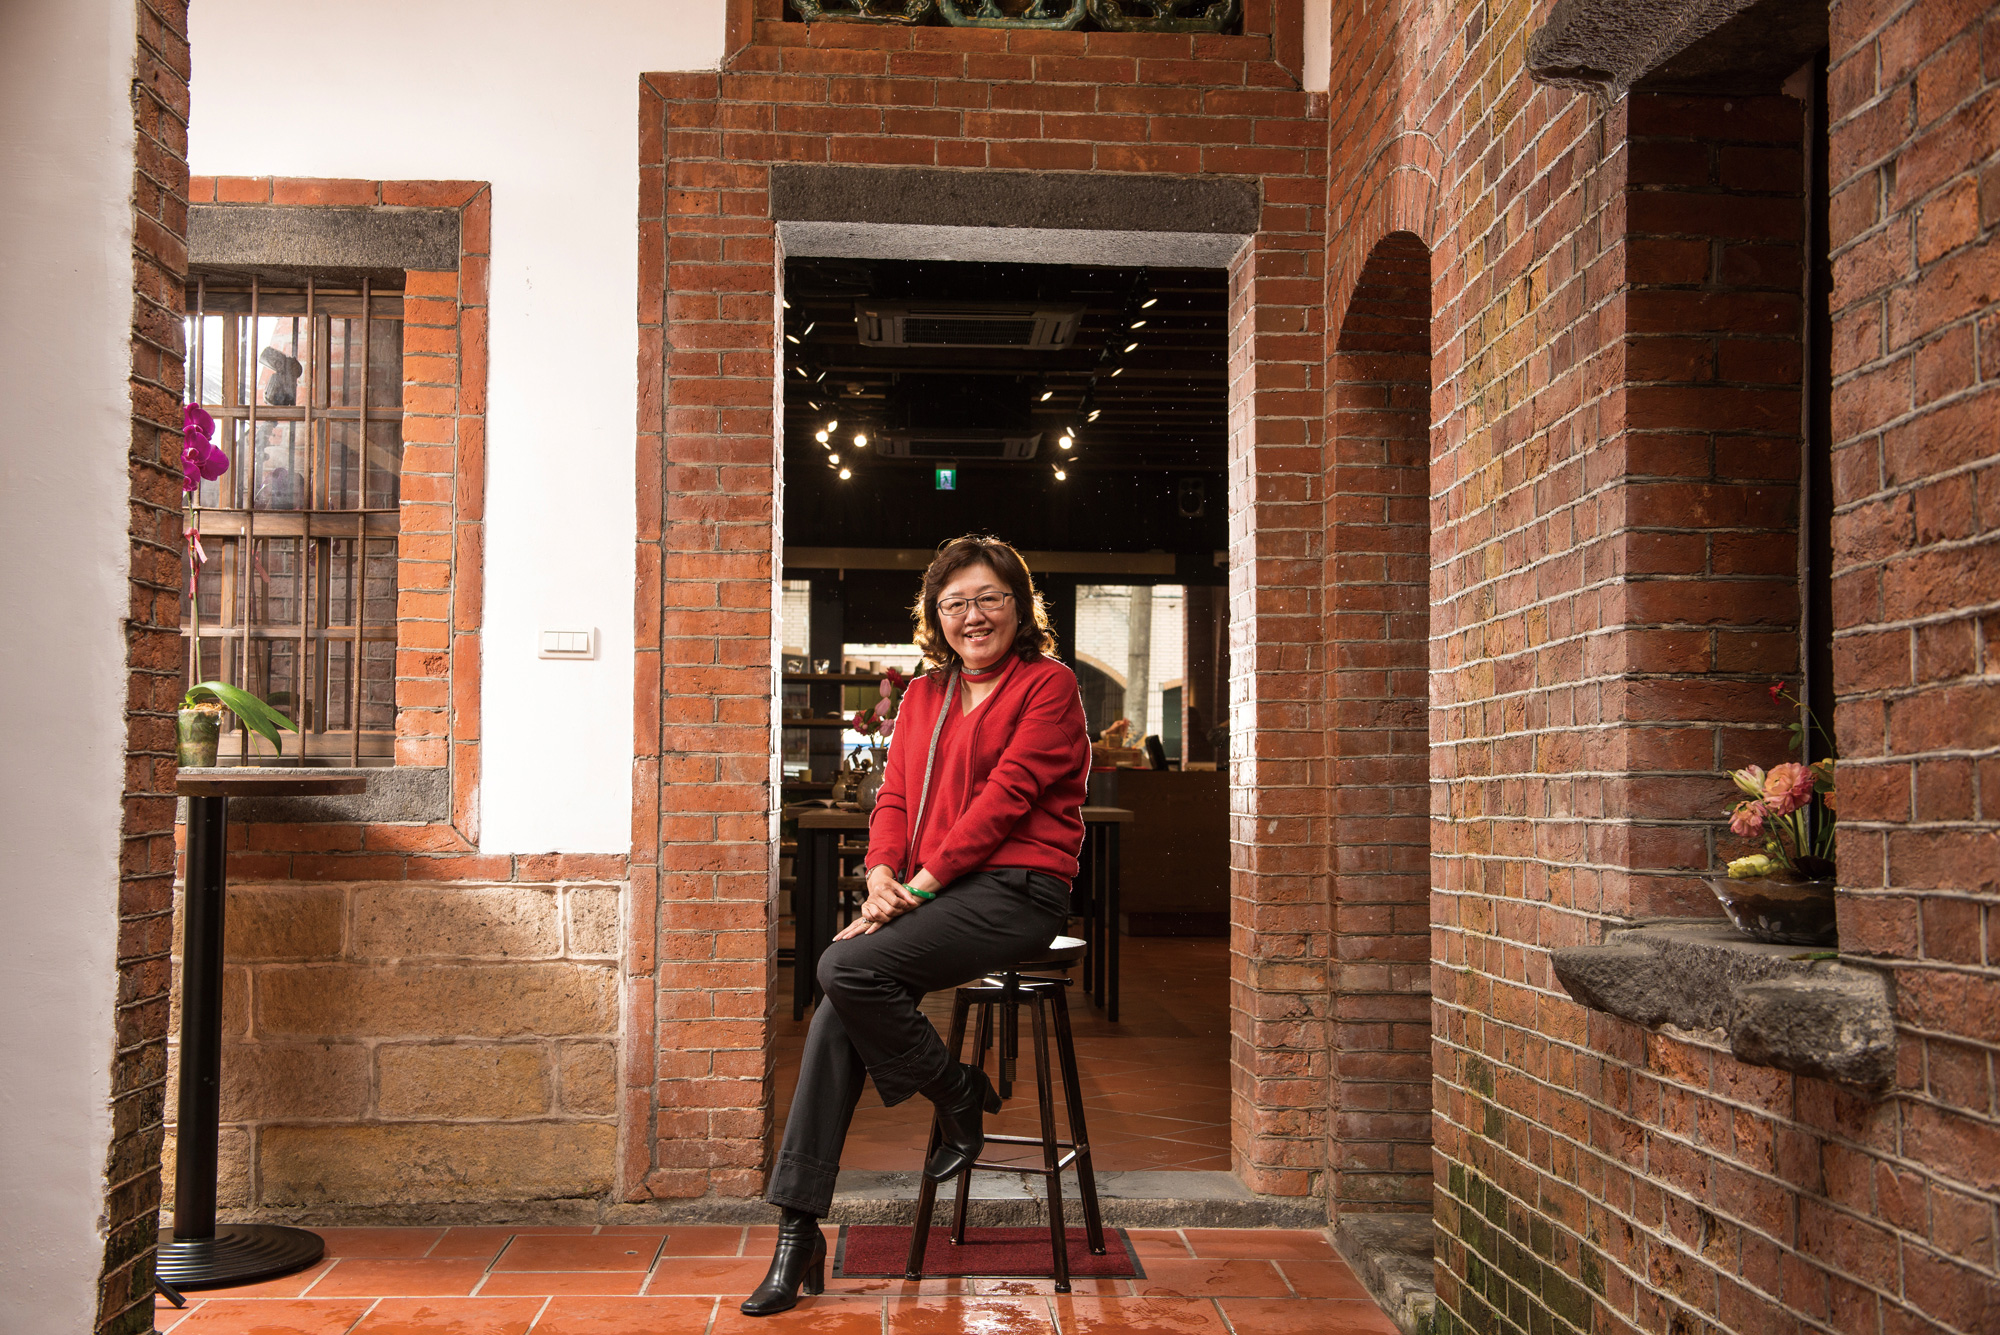 A Collector's Vision: Kuo Su-jen Brings Art into  Old City Streets